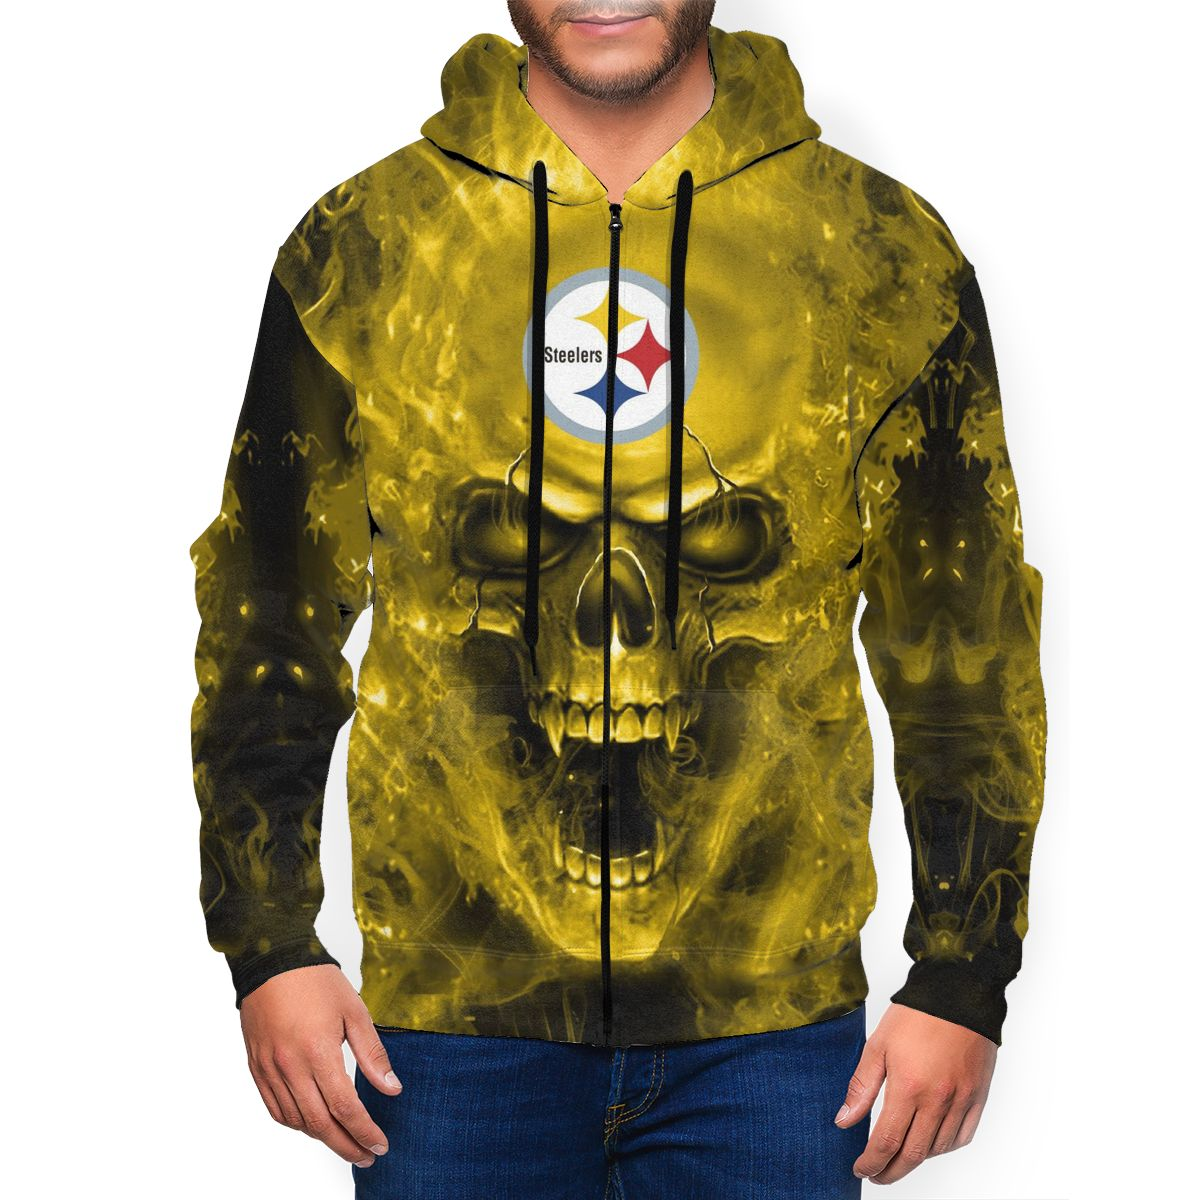 3D SKull Steelers Men's Zip Hooded Sweatshirt